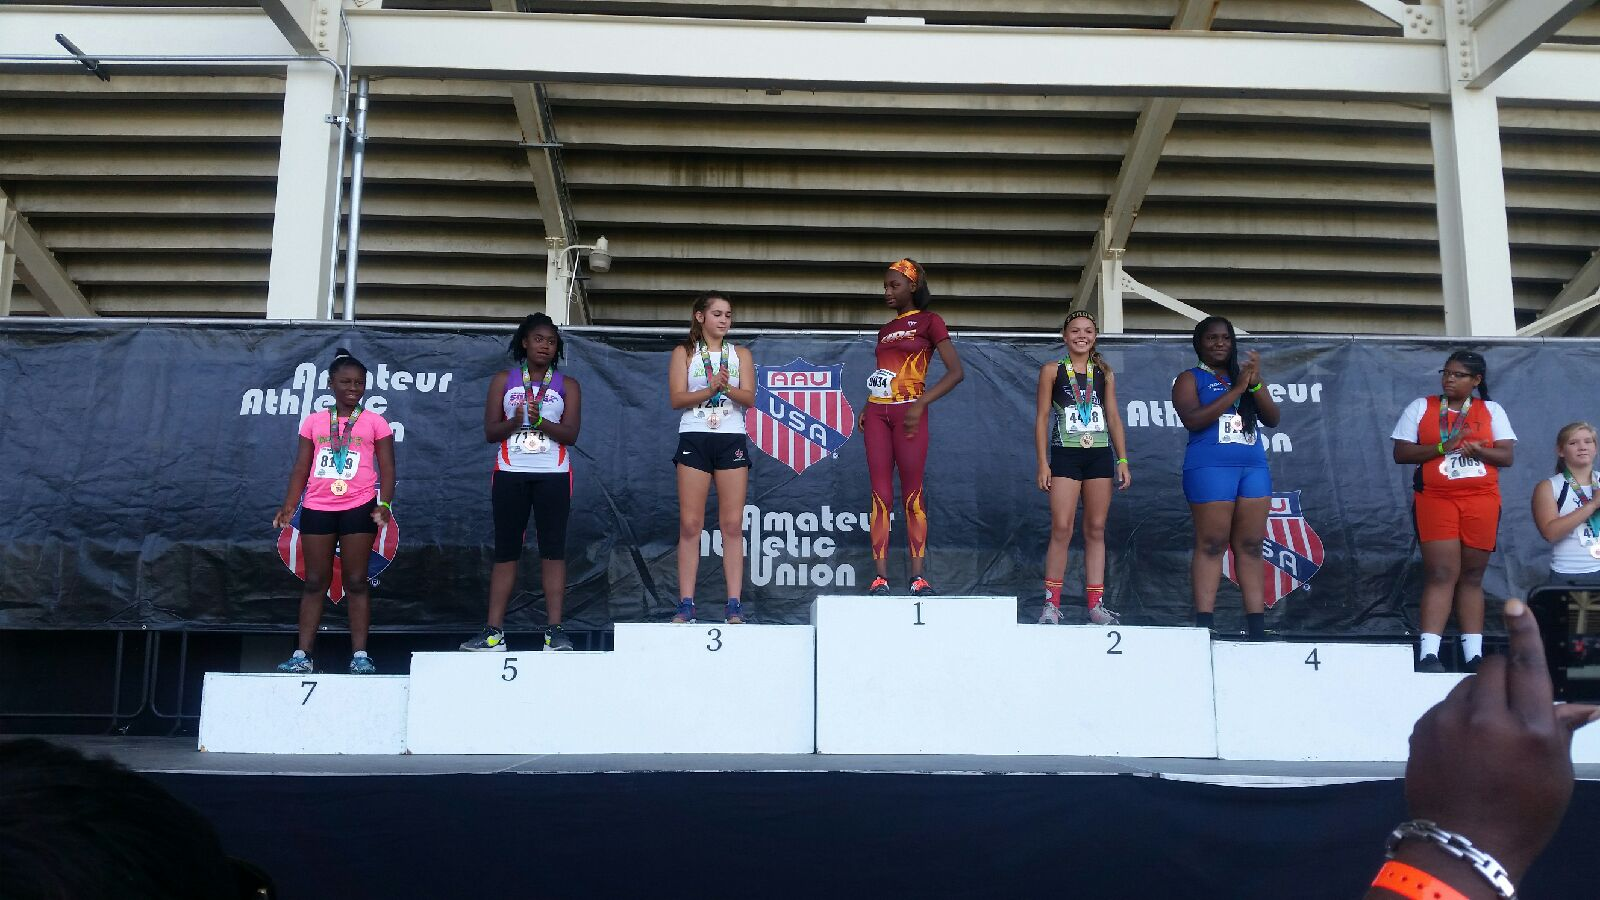 Jaiden makes the podium for the javelin